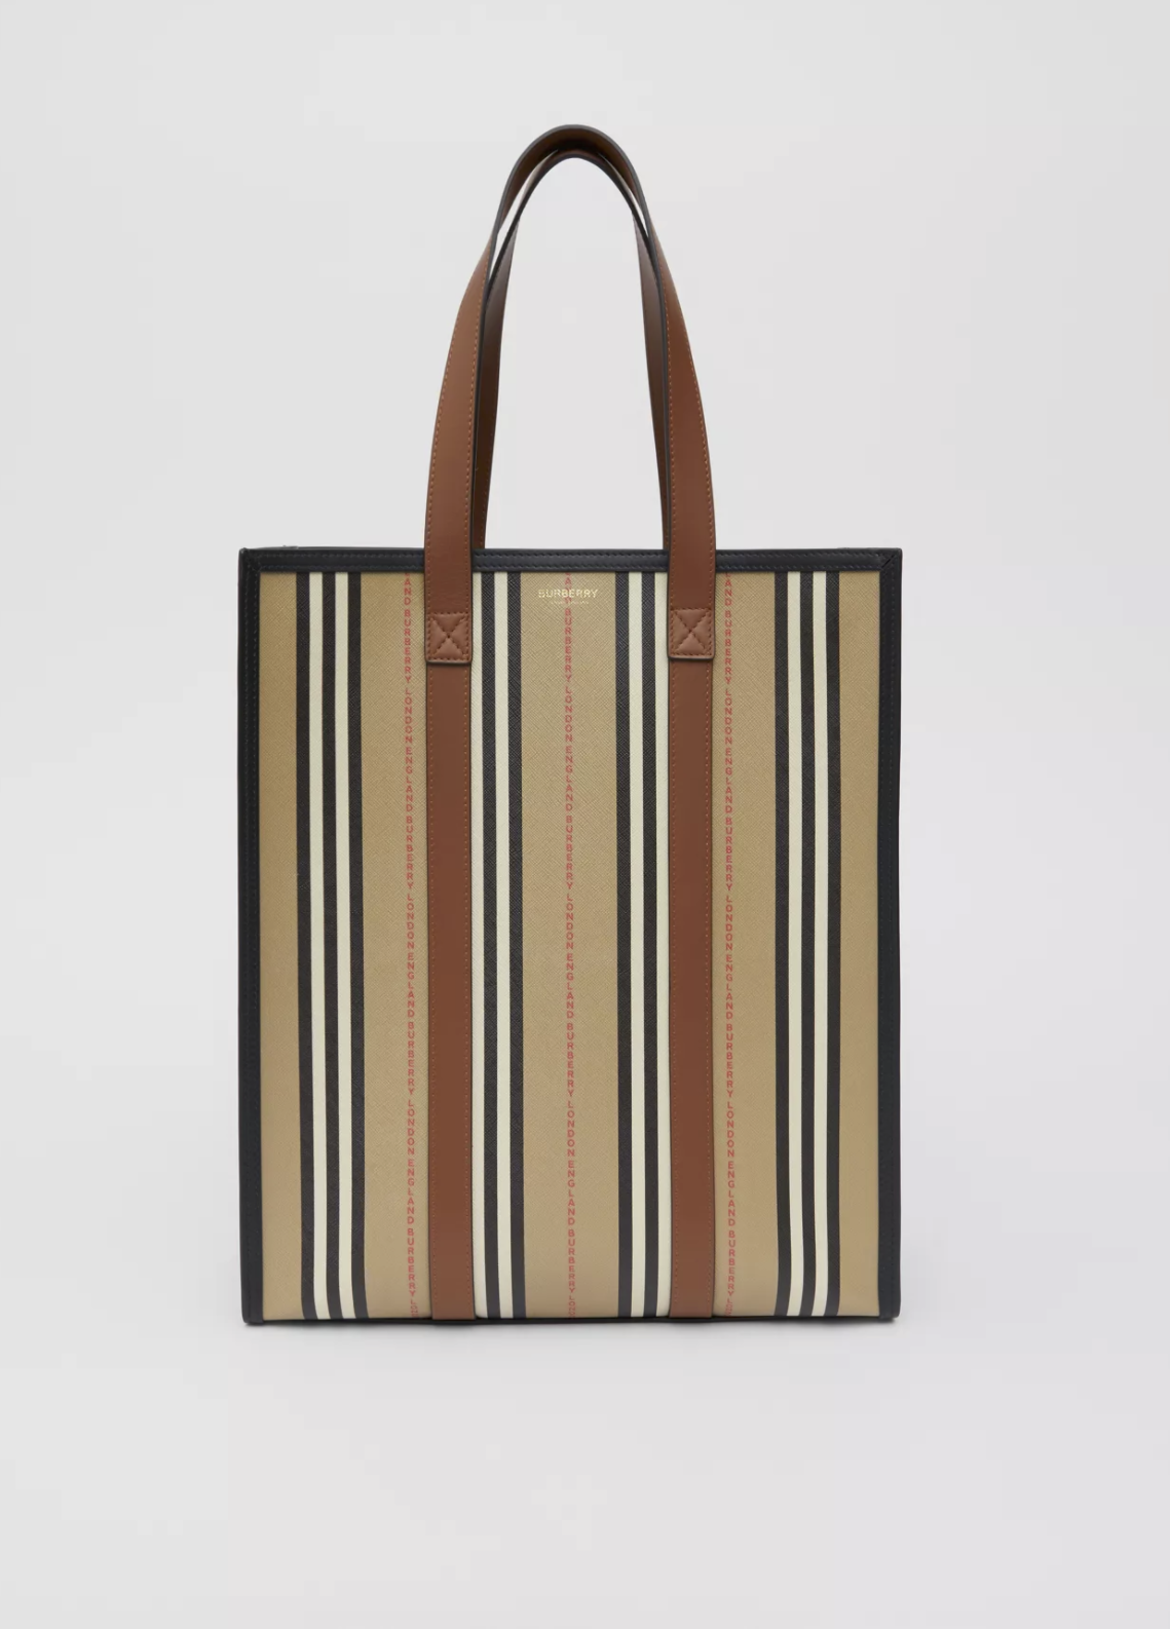 BURBERRY Logo and Stripe E-canvas Portrait Tote BagPrice HK$9,300